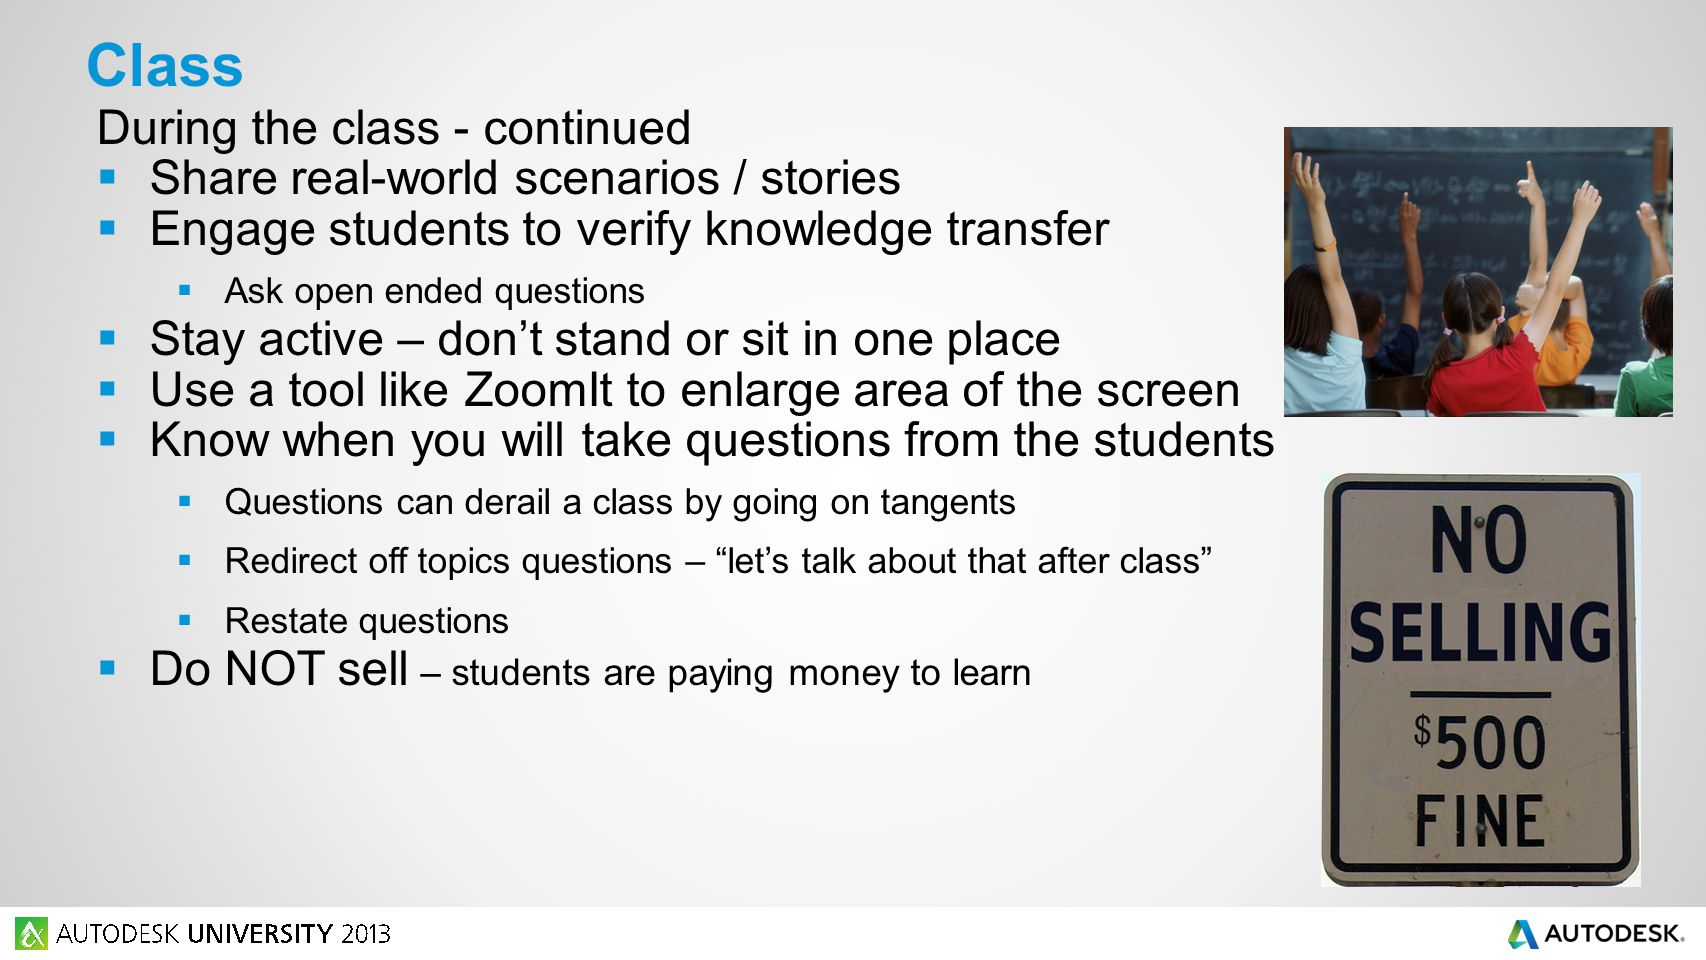 During the class - continued  Share real-world scenarios / stories  Engage students to verify knowledge transfer  Ask open ended questions  Stay active – don't stand or sit in one place  Use a tool like ZoomIt to enlarge area of the screen  Know when you will take questions from the students  Questions can derail a class by going on tangents  Redirect off topics questions – let's talk about that after class  Restate questions  Do NOT sell – students are paying money to learn Class